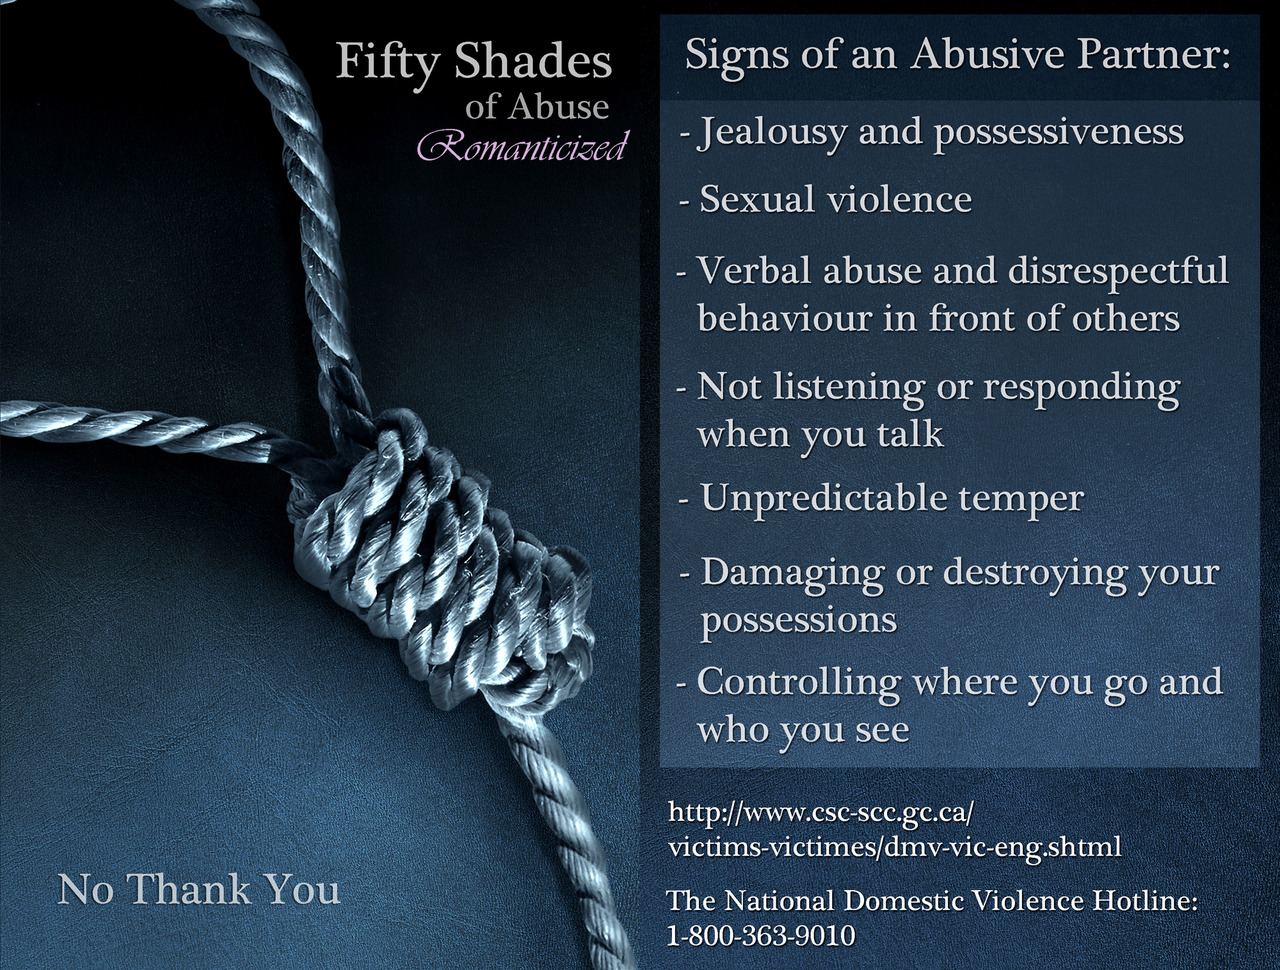 Parody of the infamous cover of 50 Shades of Grey: a close-up photo of a noose in black-and-white, with side text listing the red flags that mark an abusive relationship.